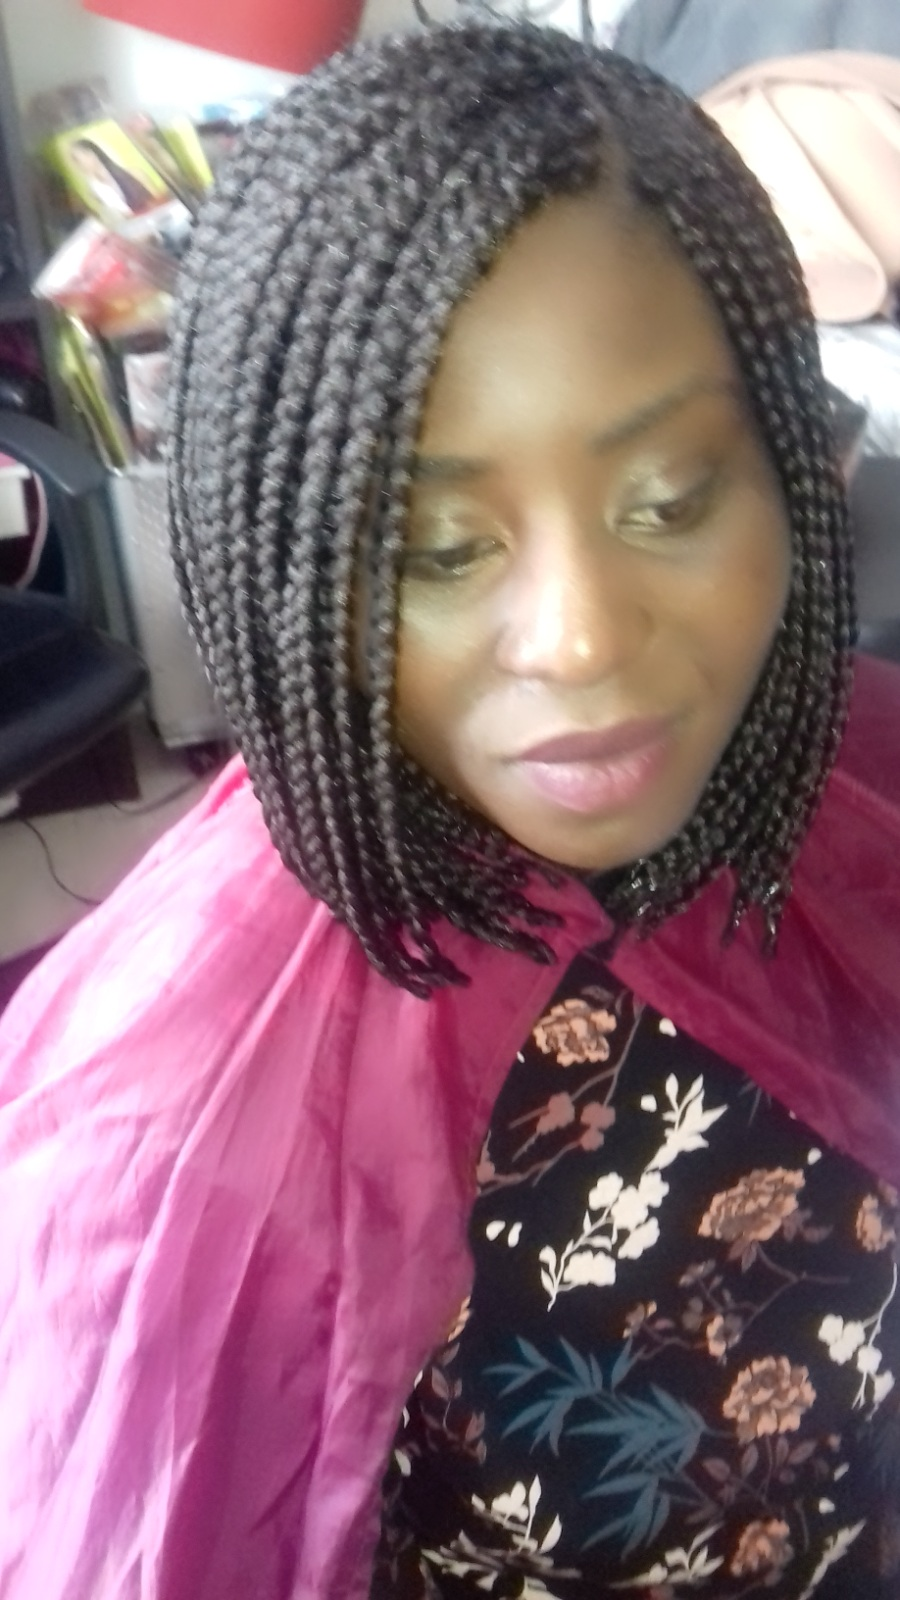 salon de coiffure afro tresse tresses box braids crochet braids vanilles tissages paris 75 77 78 91 92 93 94 95 VKWOPIBF